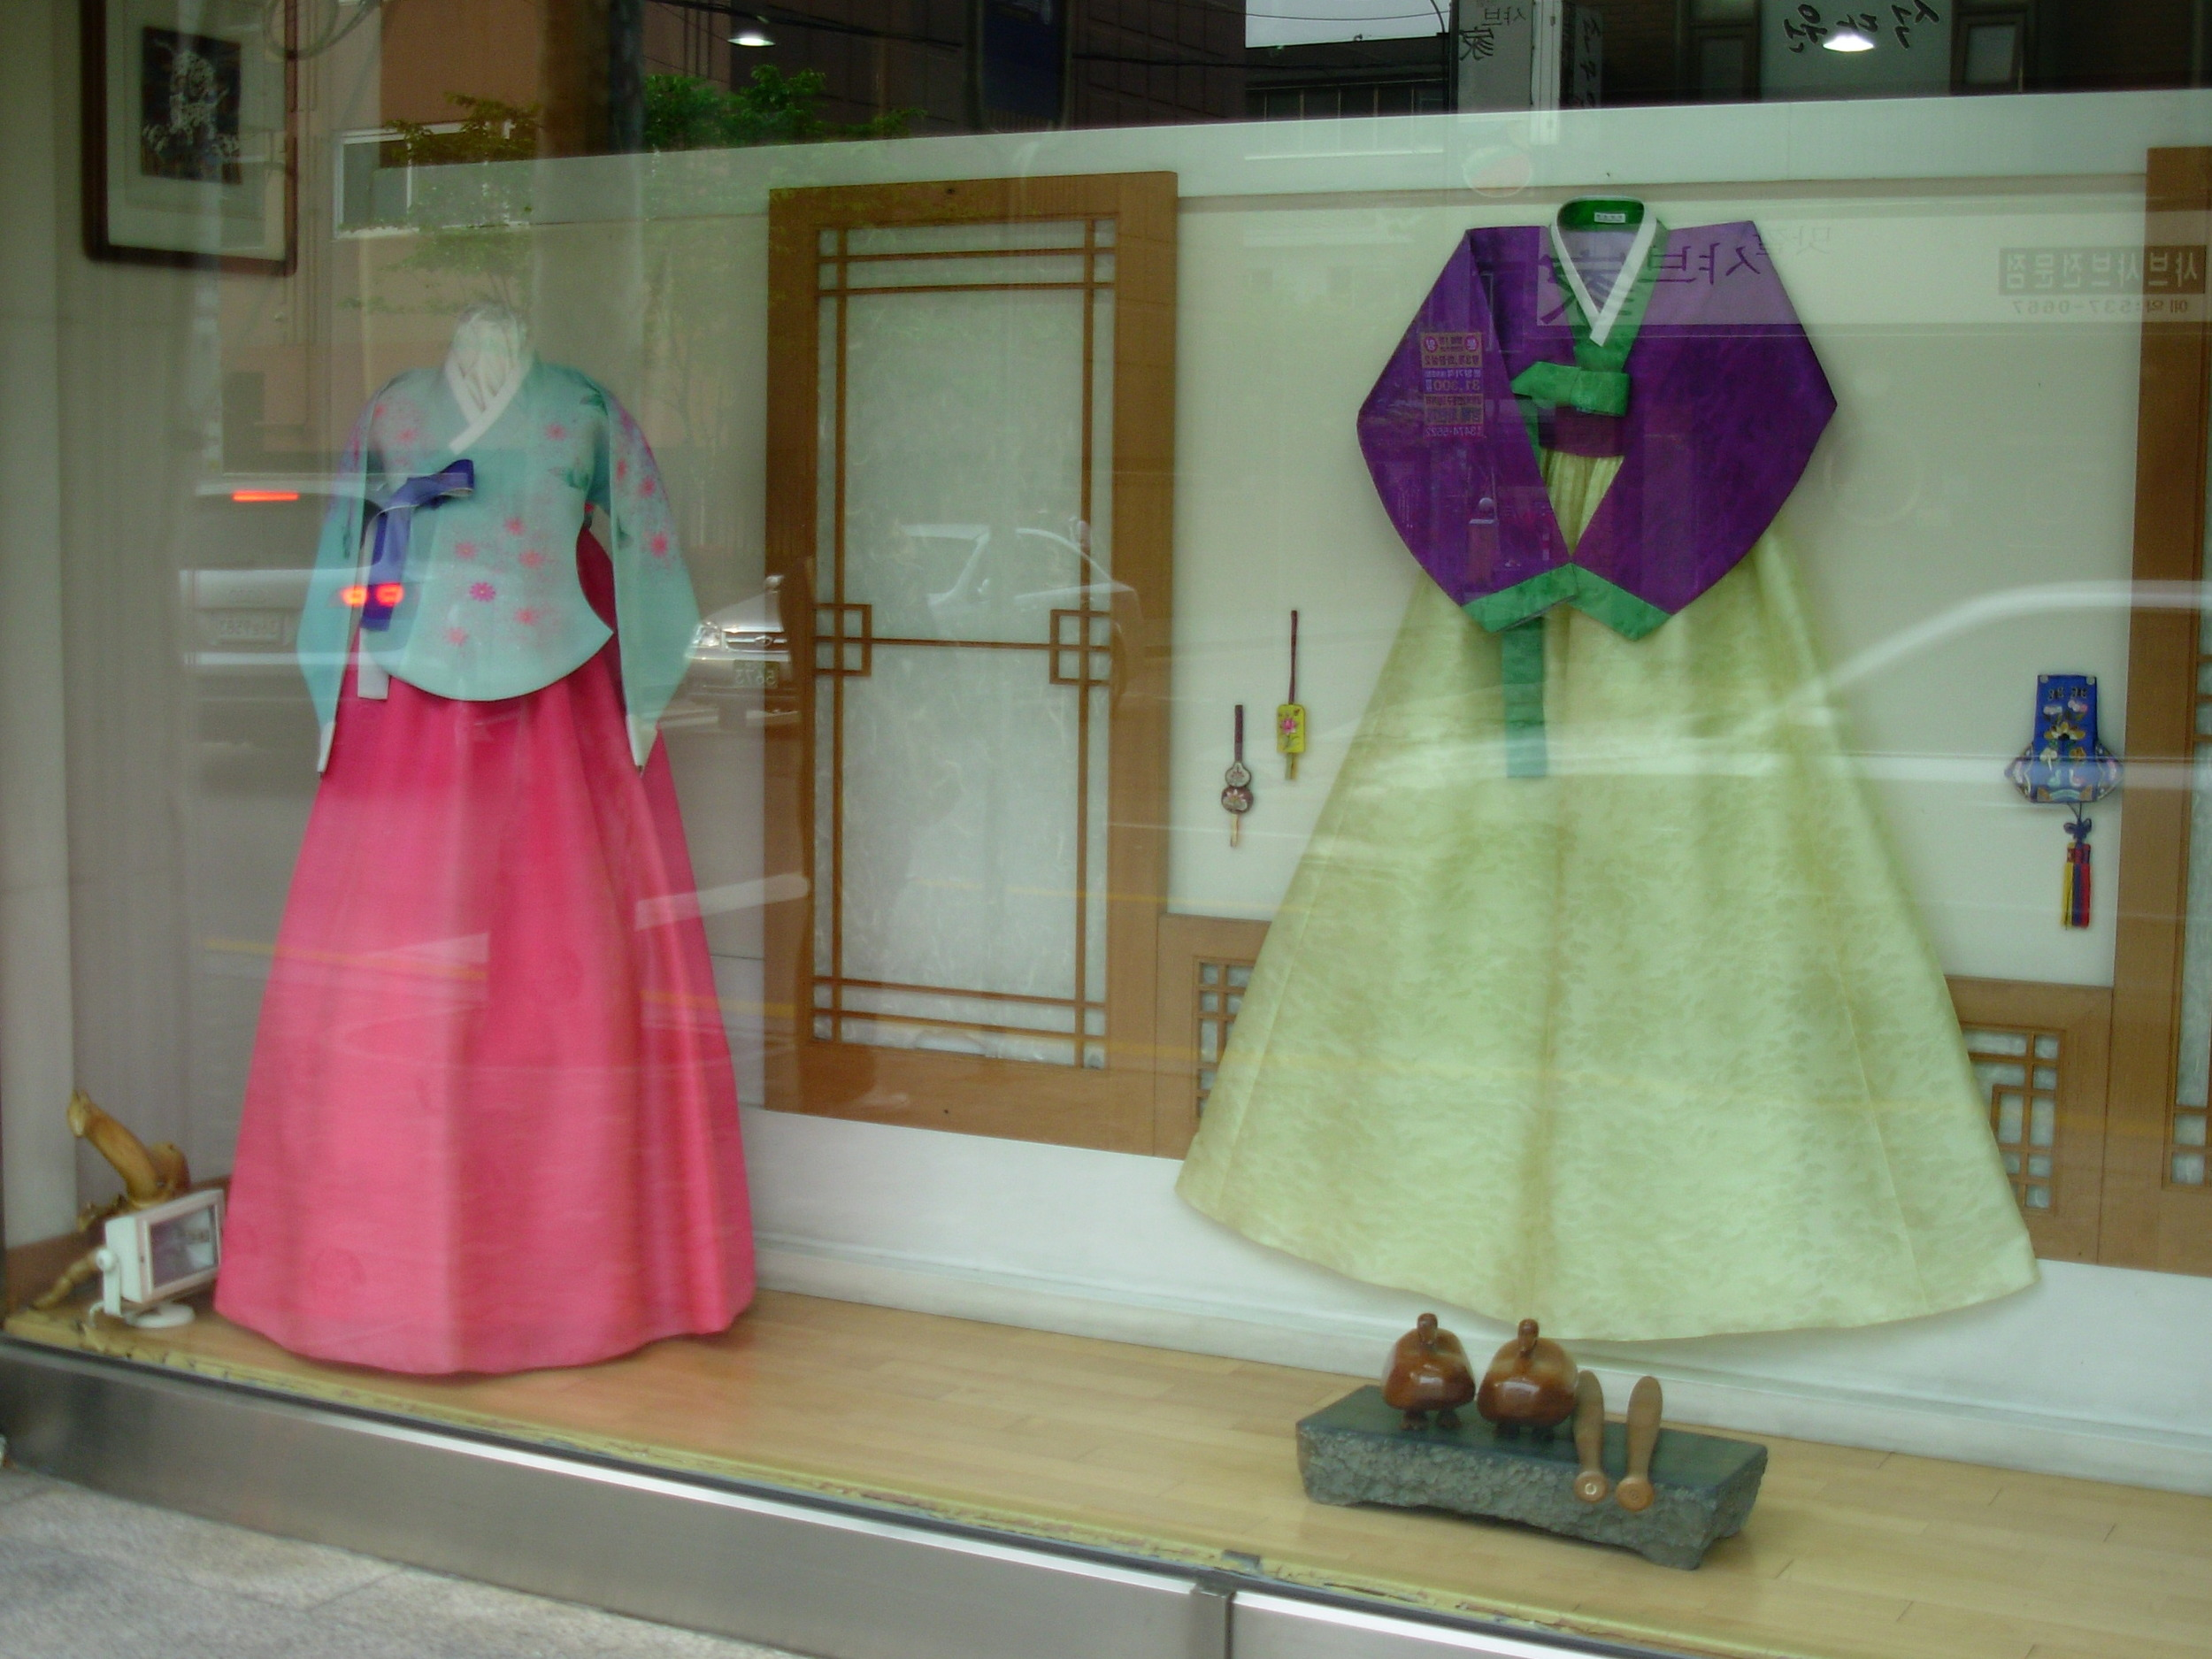 Hanbok , traditional Korean clothing, was not very common.